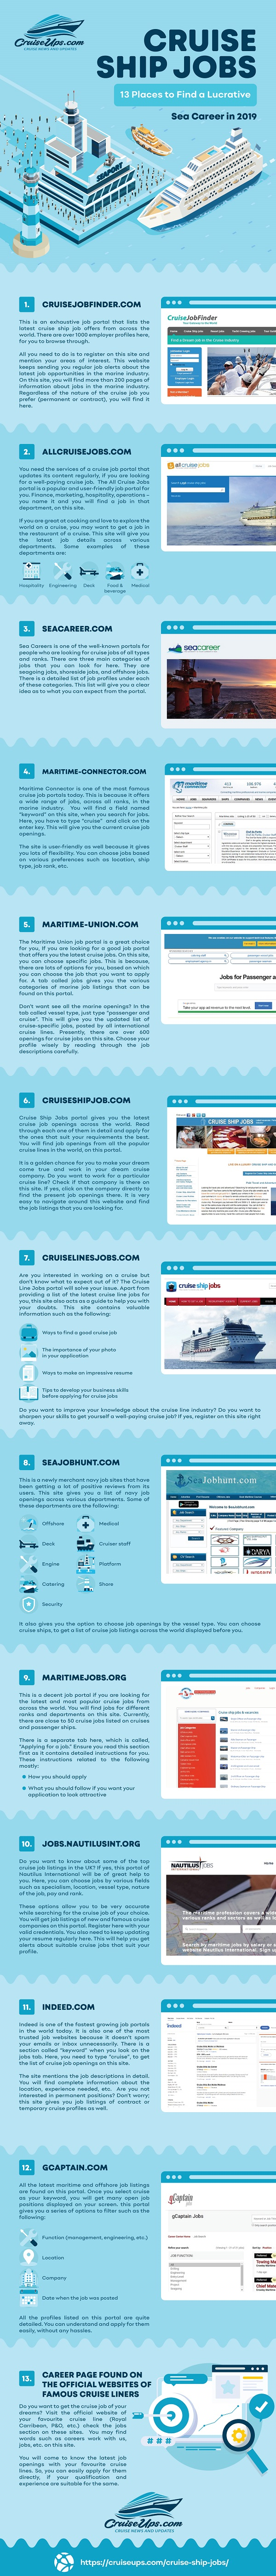 Cruise Ship Jobs – 13 Places to Find a Lucrative Sea Career